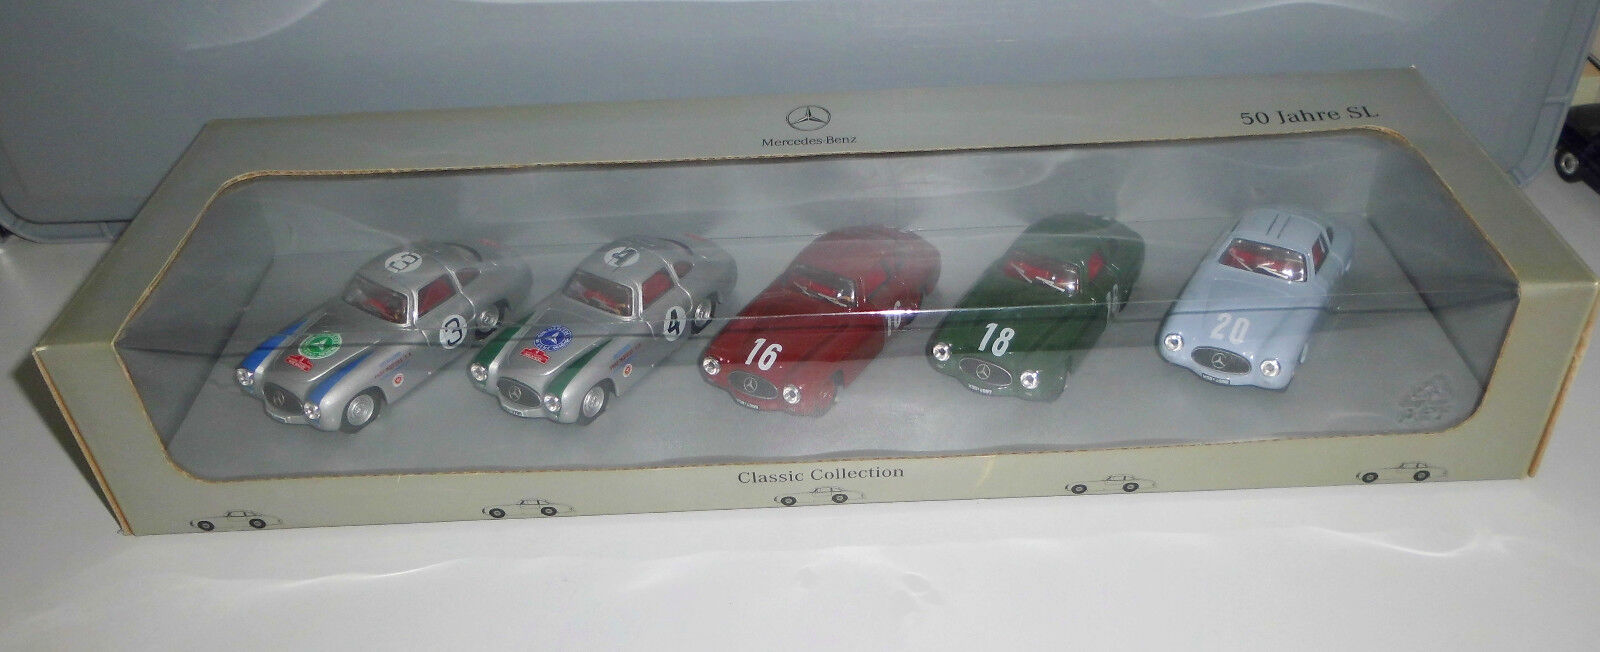 MERCEDES CLASSIC COLLECTION 1:43, 50 anni SL IN SCATOLA ORIGINALE